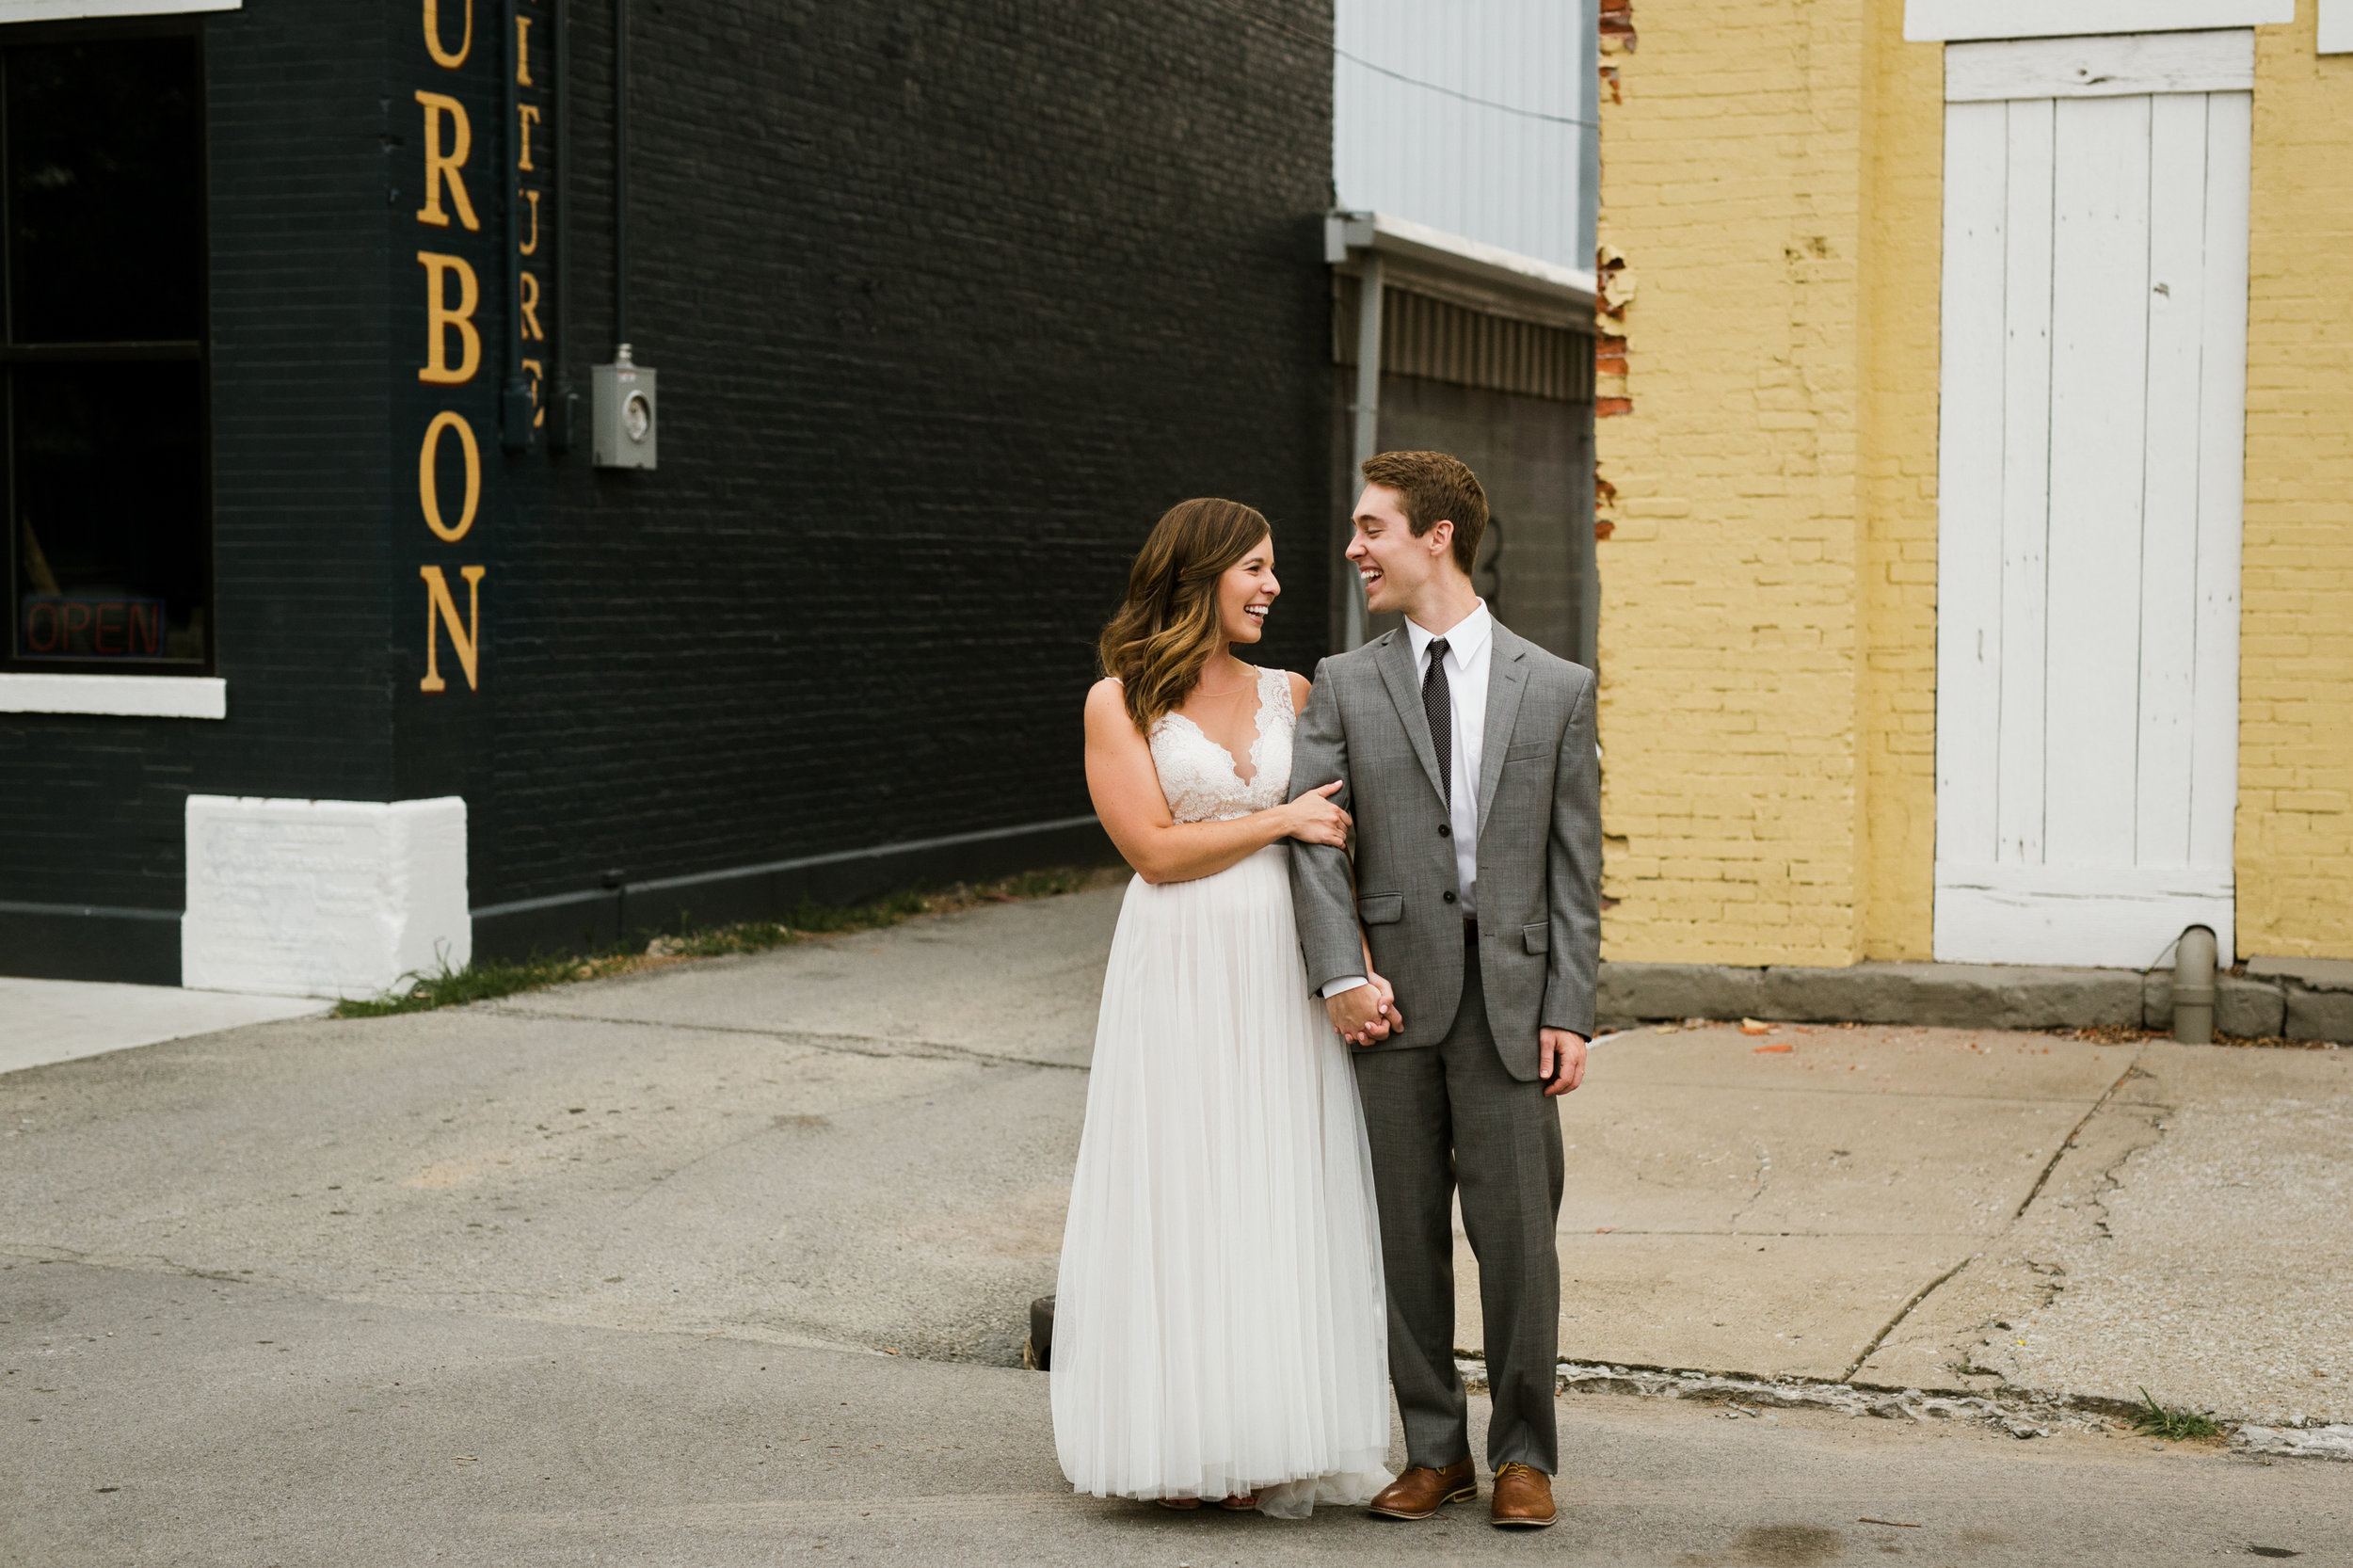 Amanda & Dave Anniversary 2018 Crystal Ludwick Photo Louisville Wedding Photographer Kentucky Wedding Photographer (27 of 43).jpg